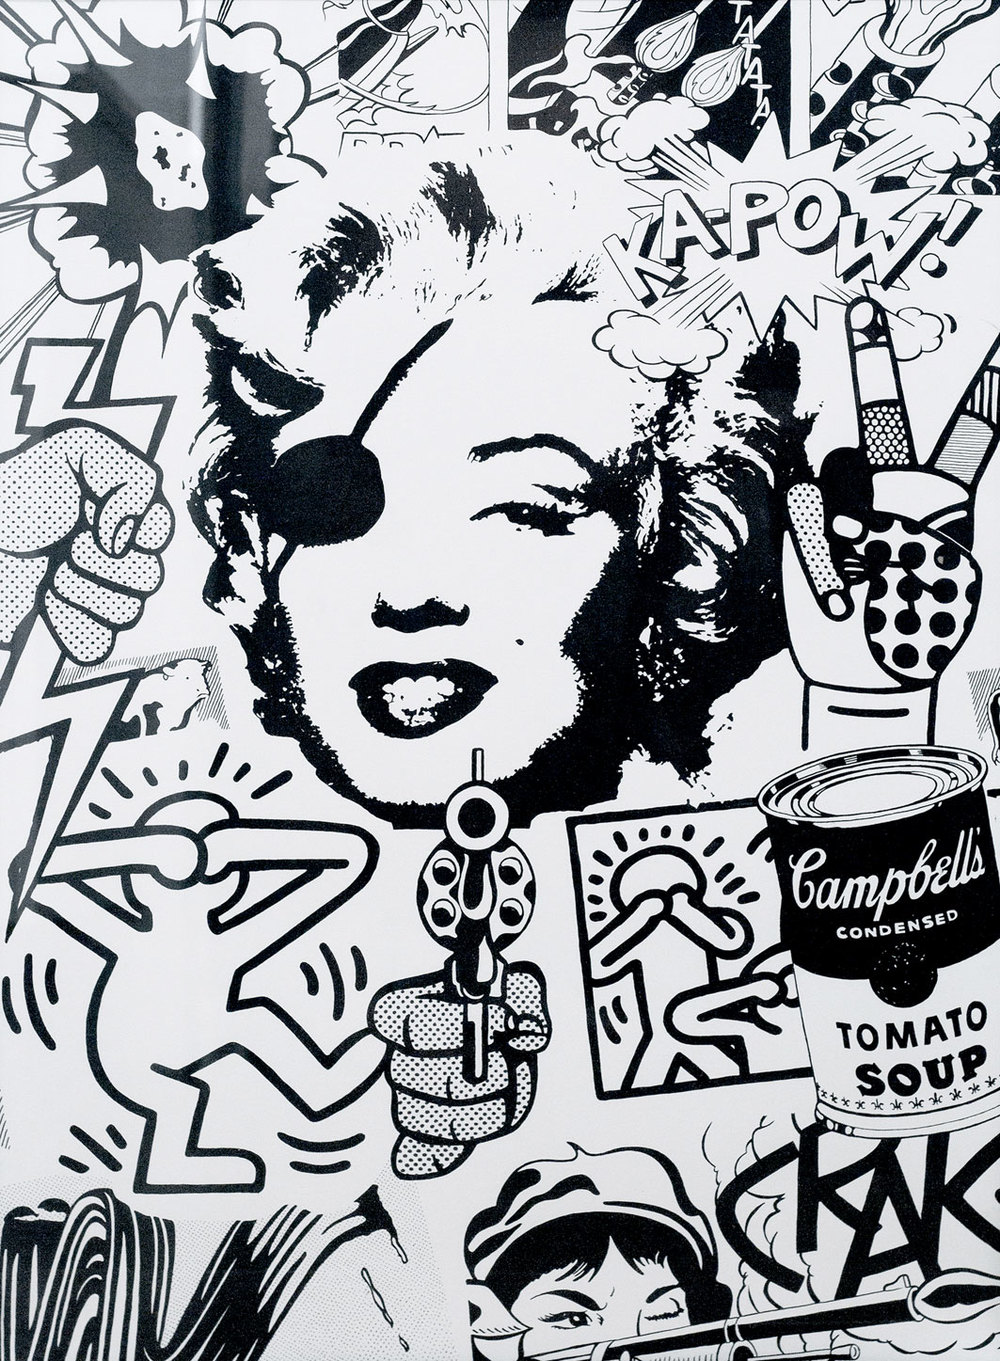 'This Is Pop Art' By Cote Escriva